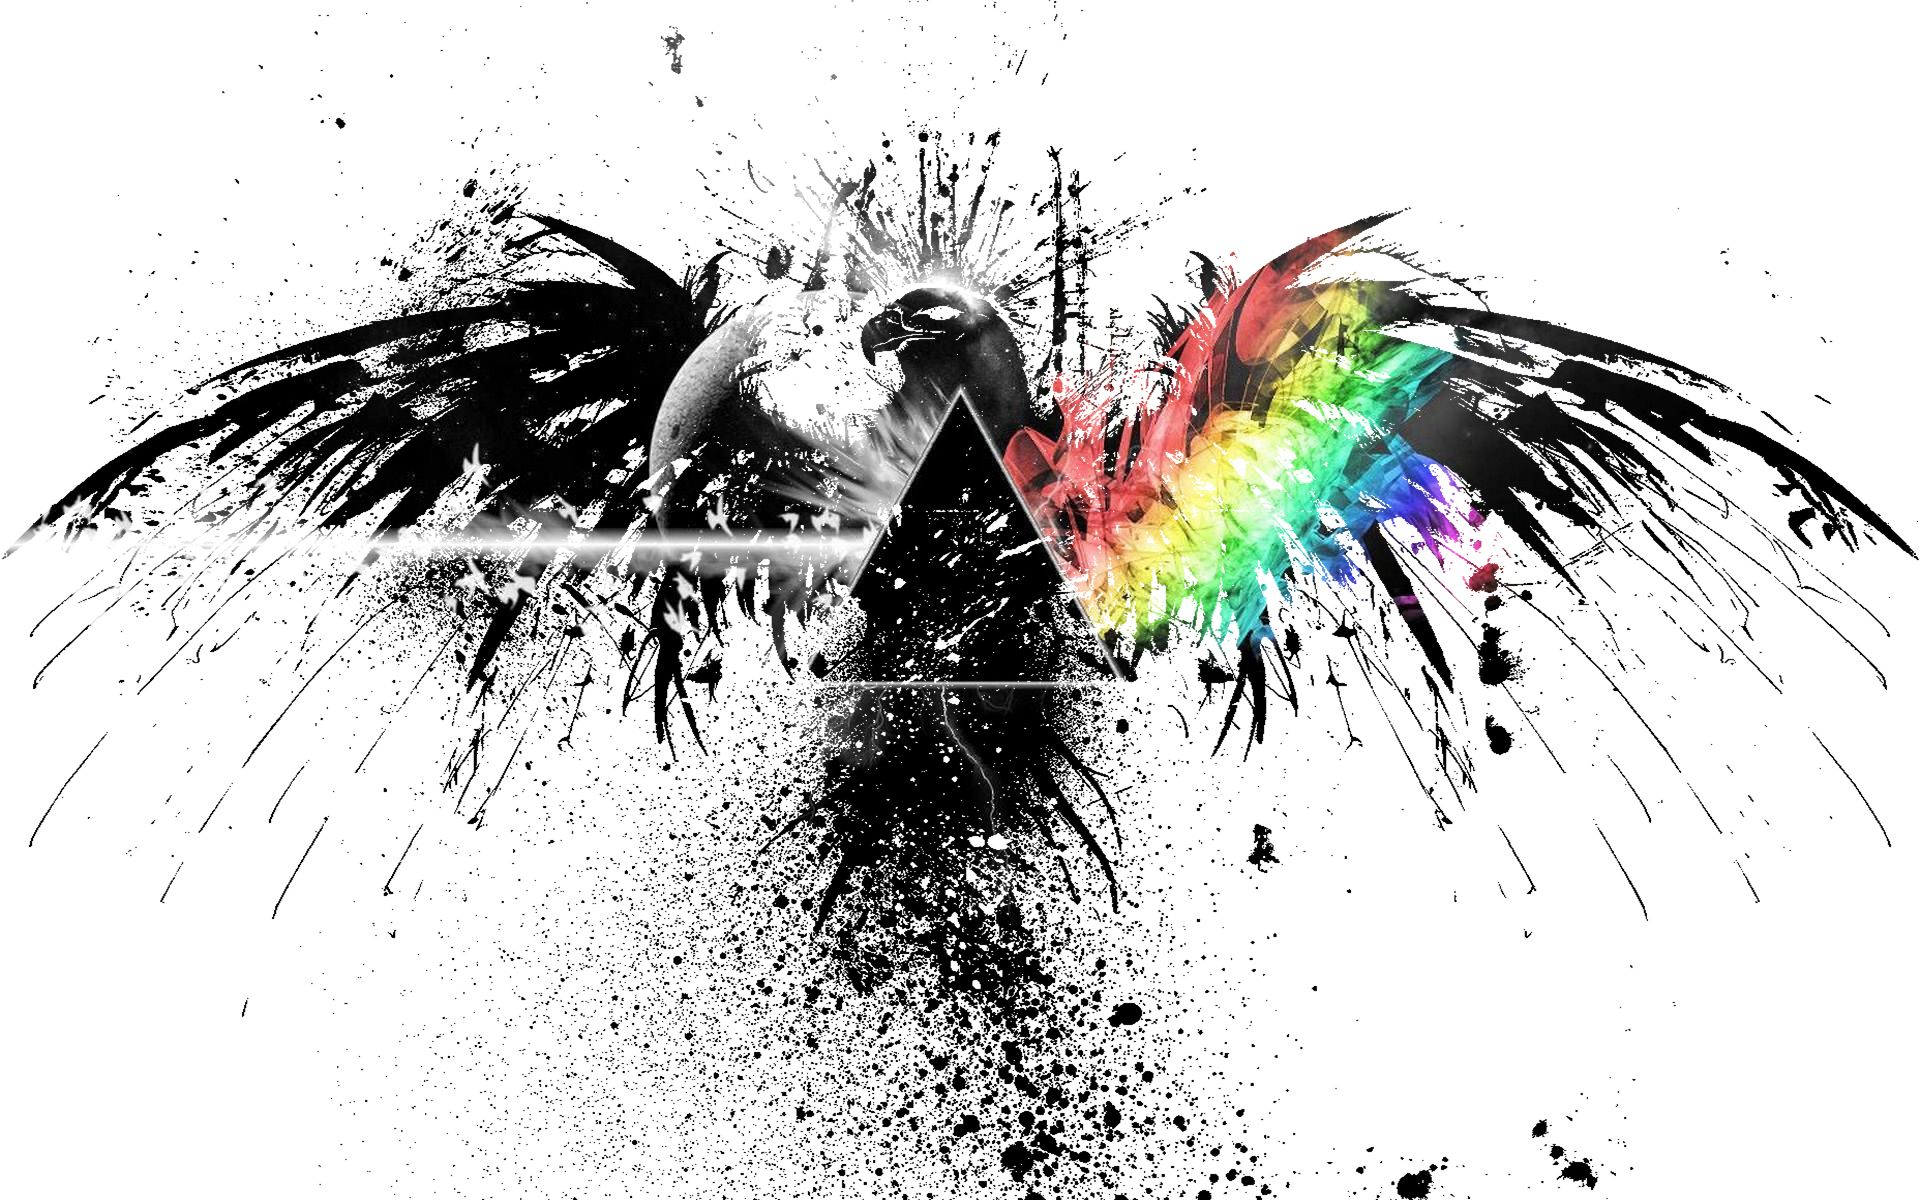 Music Pink Floyd Eagles Flags 1920x1200 Wallpaper Pink